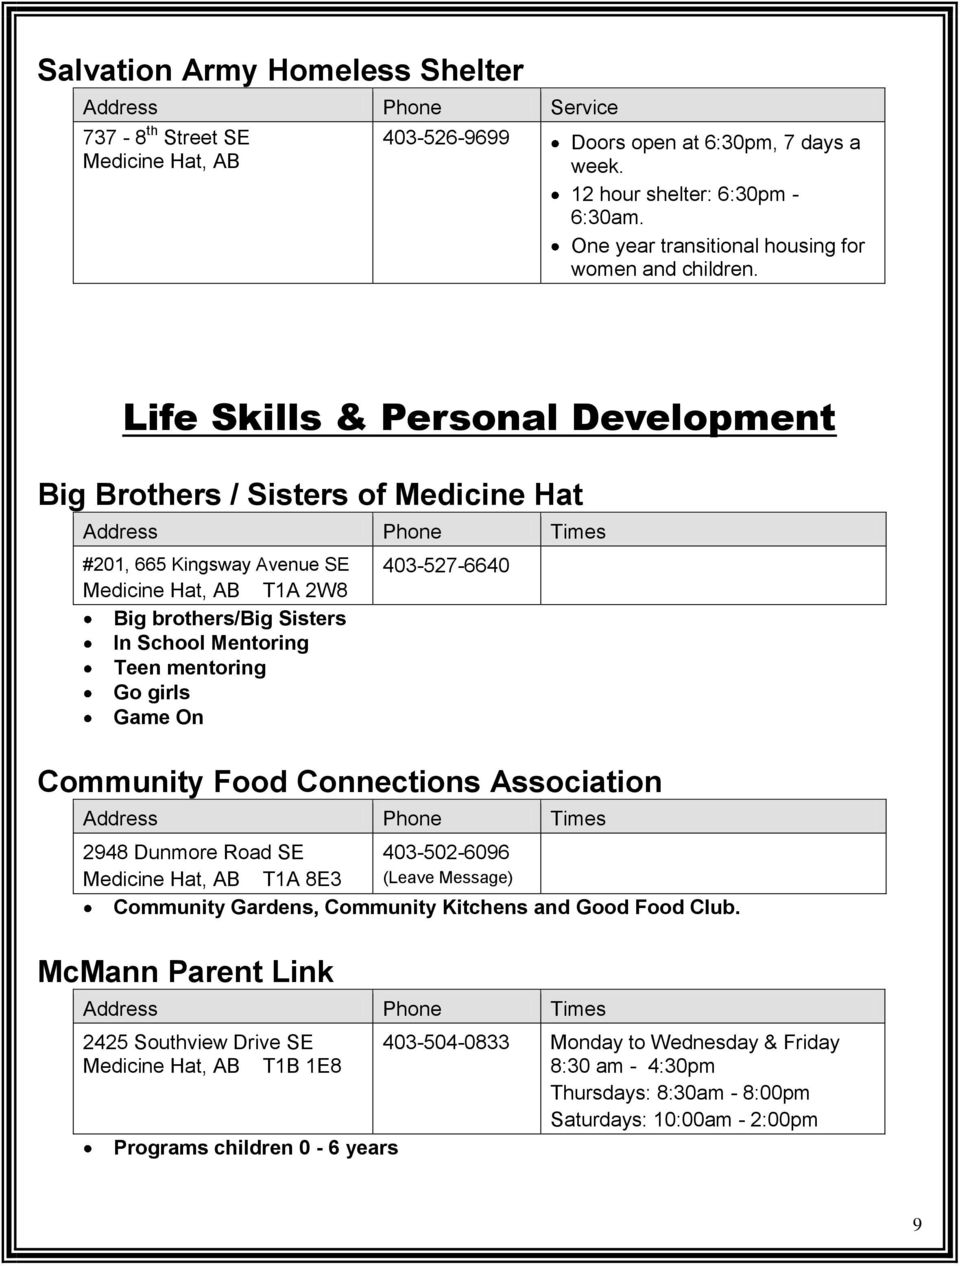 Life Skills & Personal Development Big Brothers / Sisters of Medicine Hat #201, 665 Kingsway Avenue SE T1A 2W8 Big brothers/big Sisters In School Mentoring Teen mentoring Go girls Game